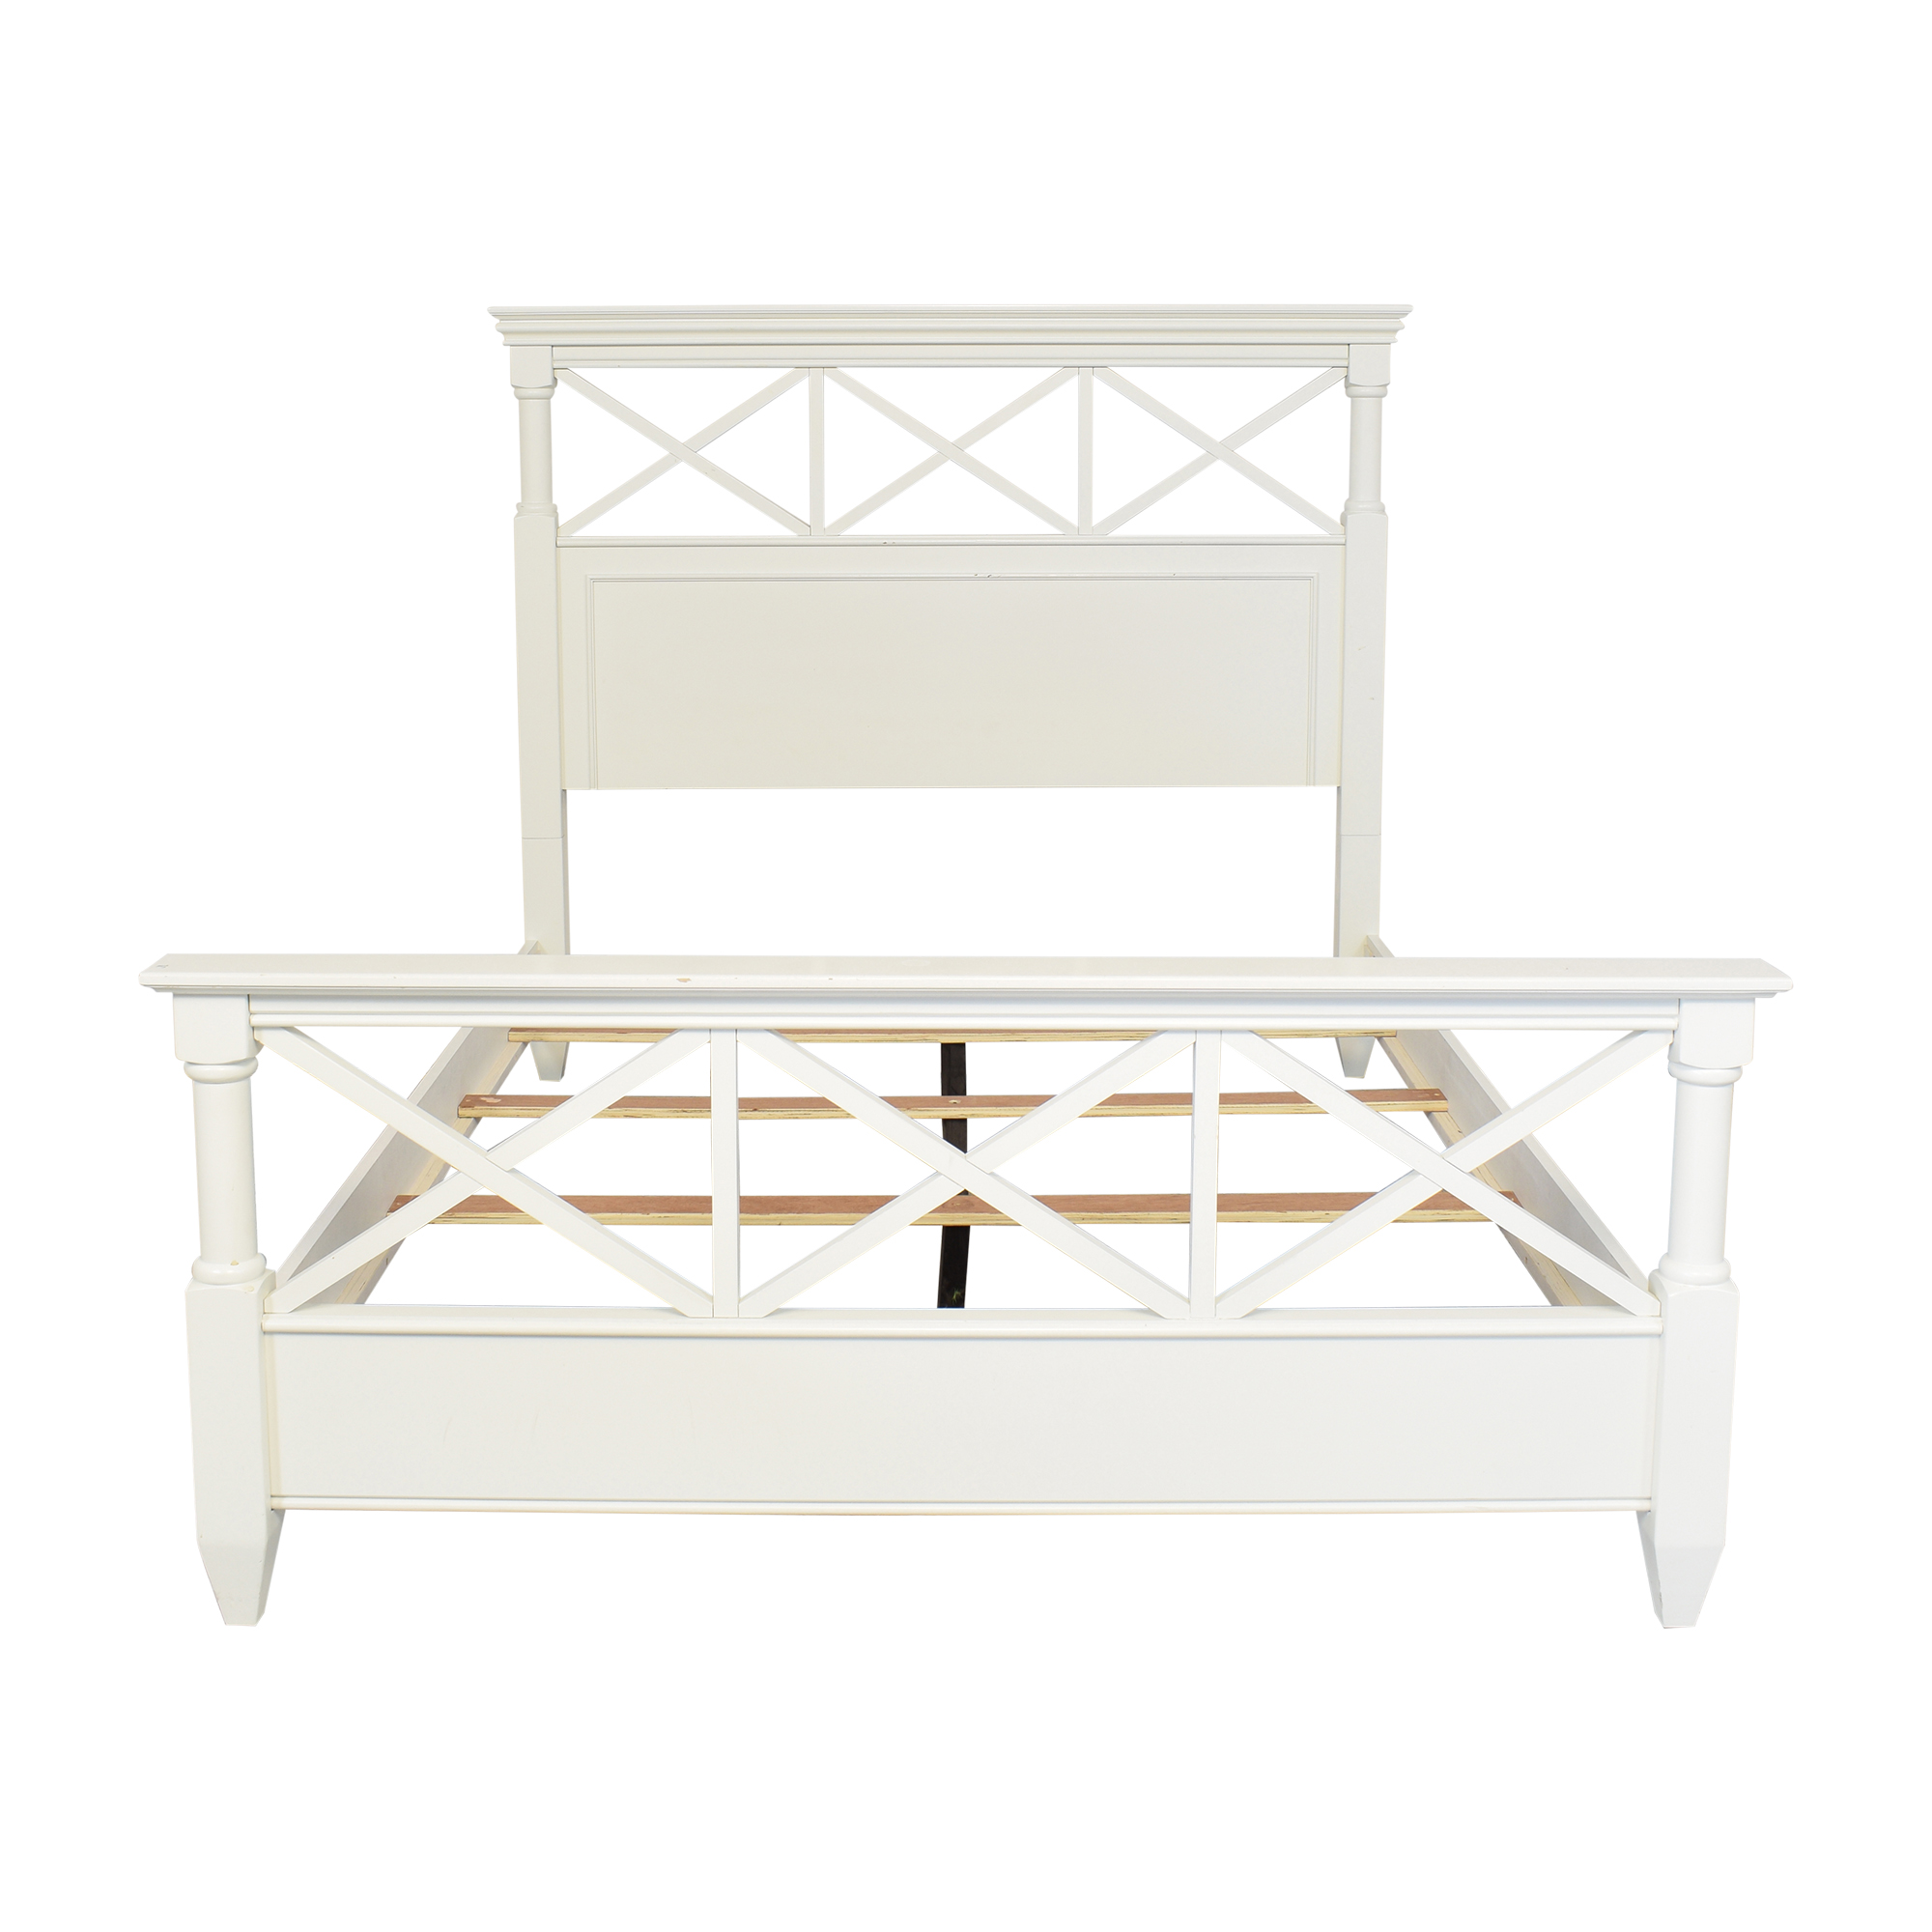 Magnussen Home Magnussen Home Queen Bed Frame dimensions